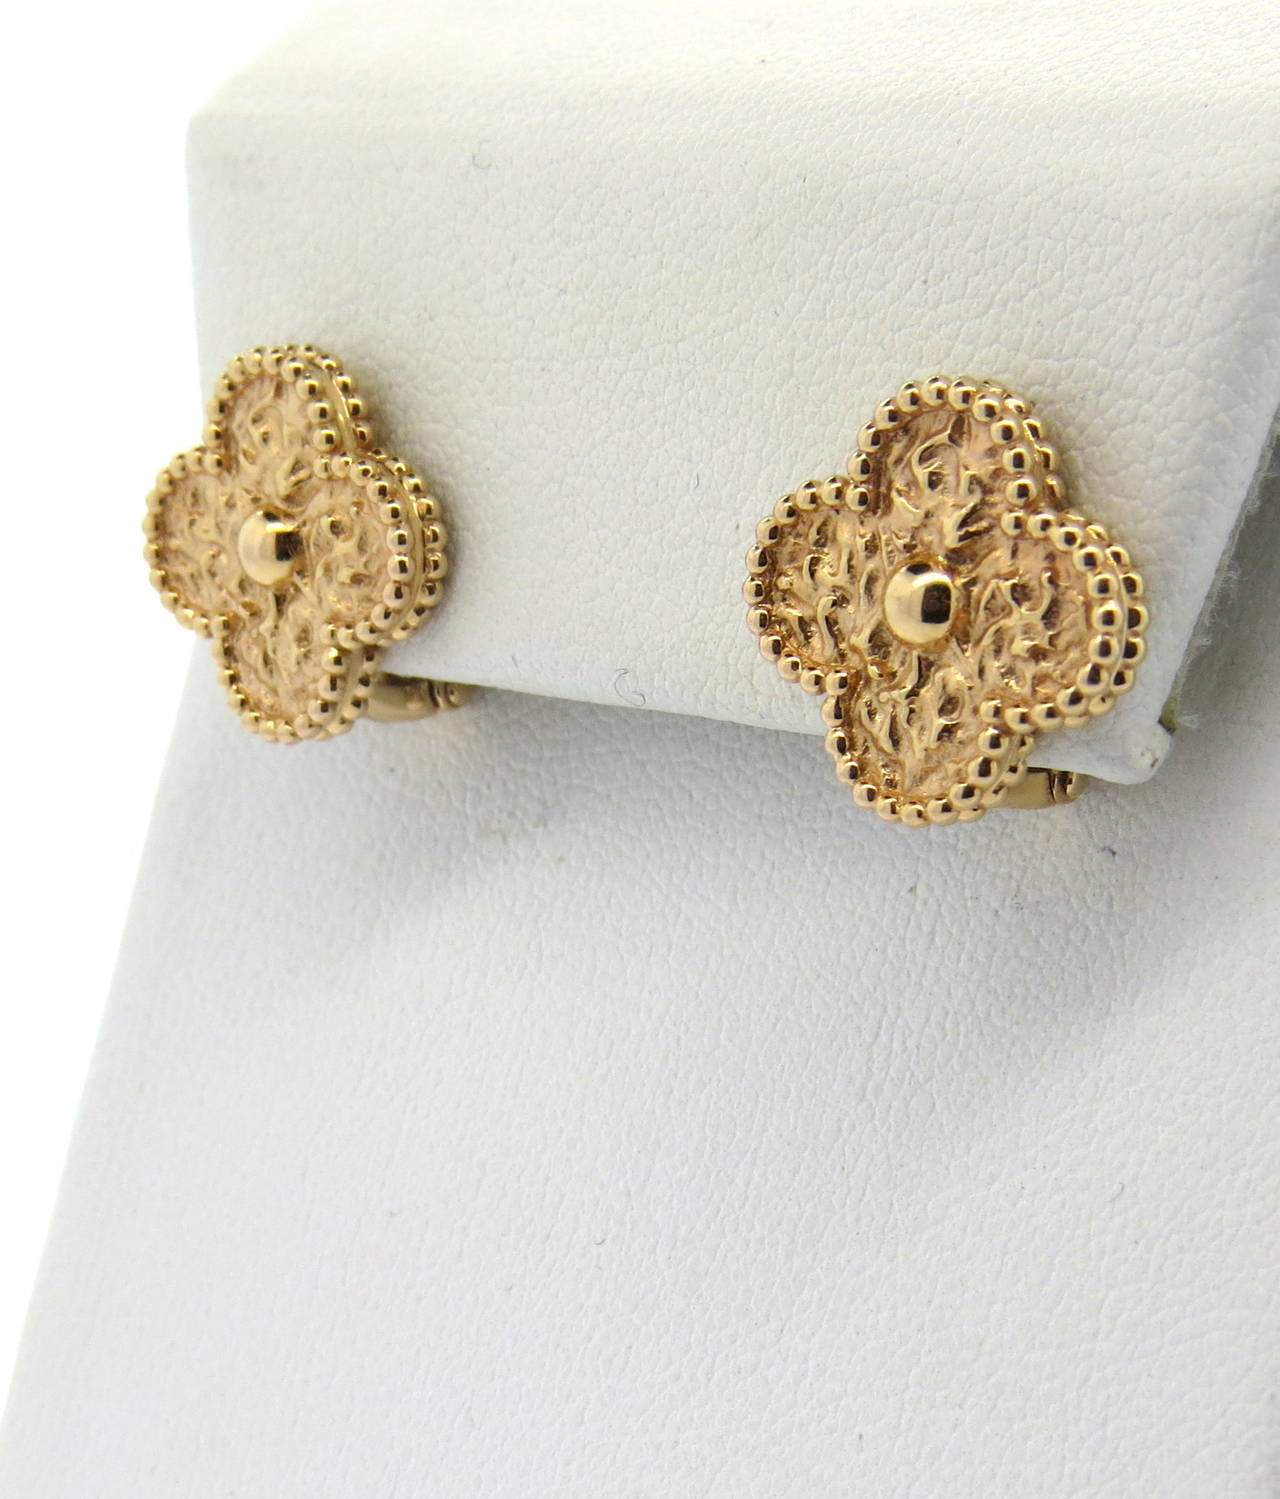 f68c0c7ecb Van Cleef   Arpels Vintage Alhambra Gold Earrings In Excellent Condition  For Sale In Lahaska